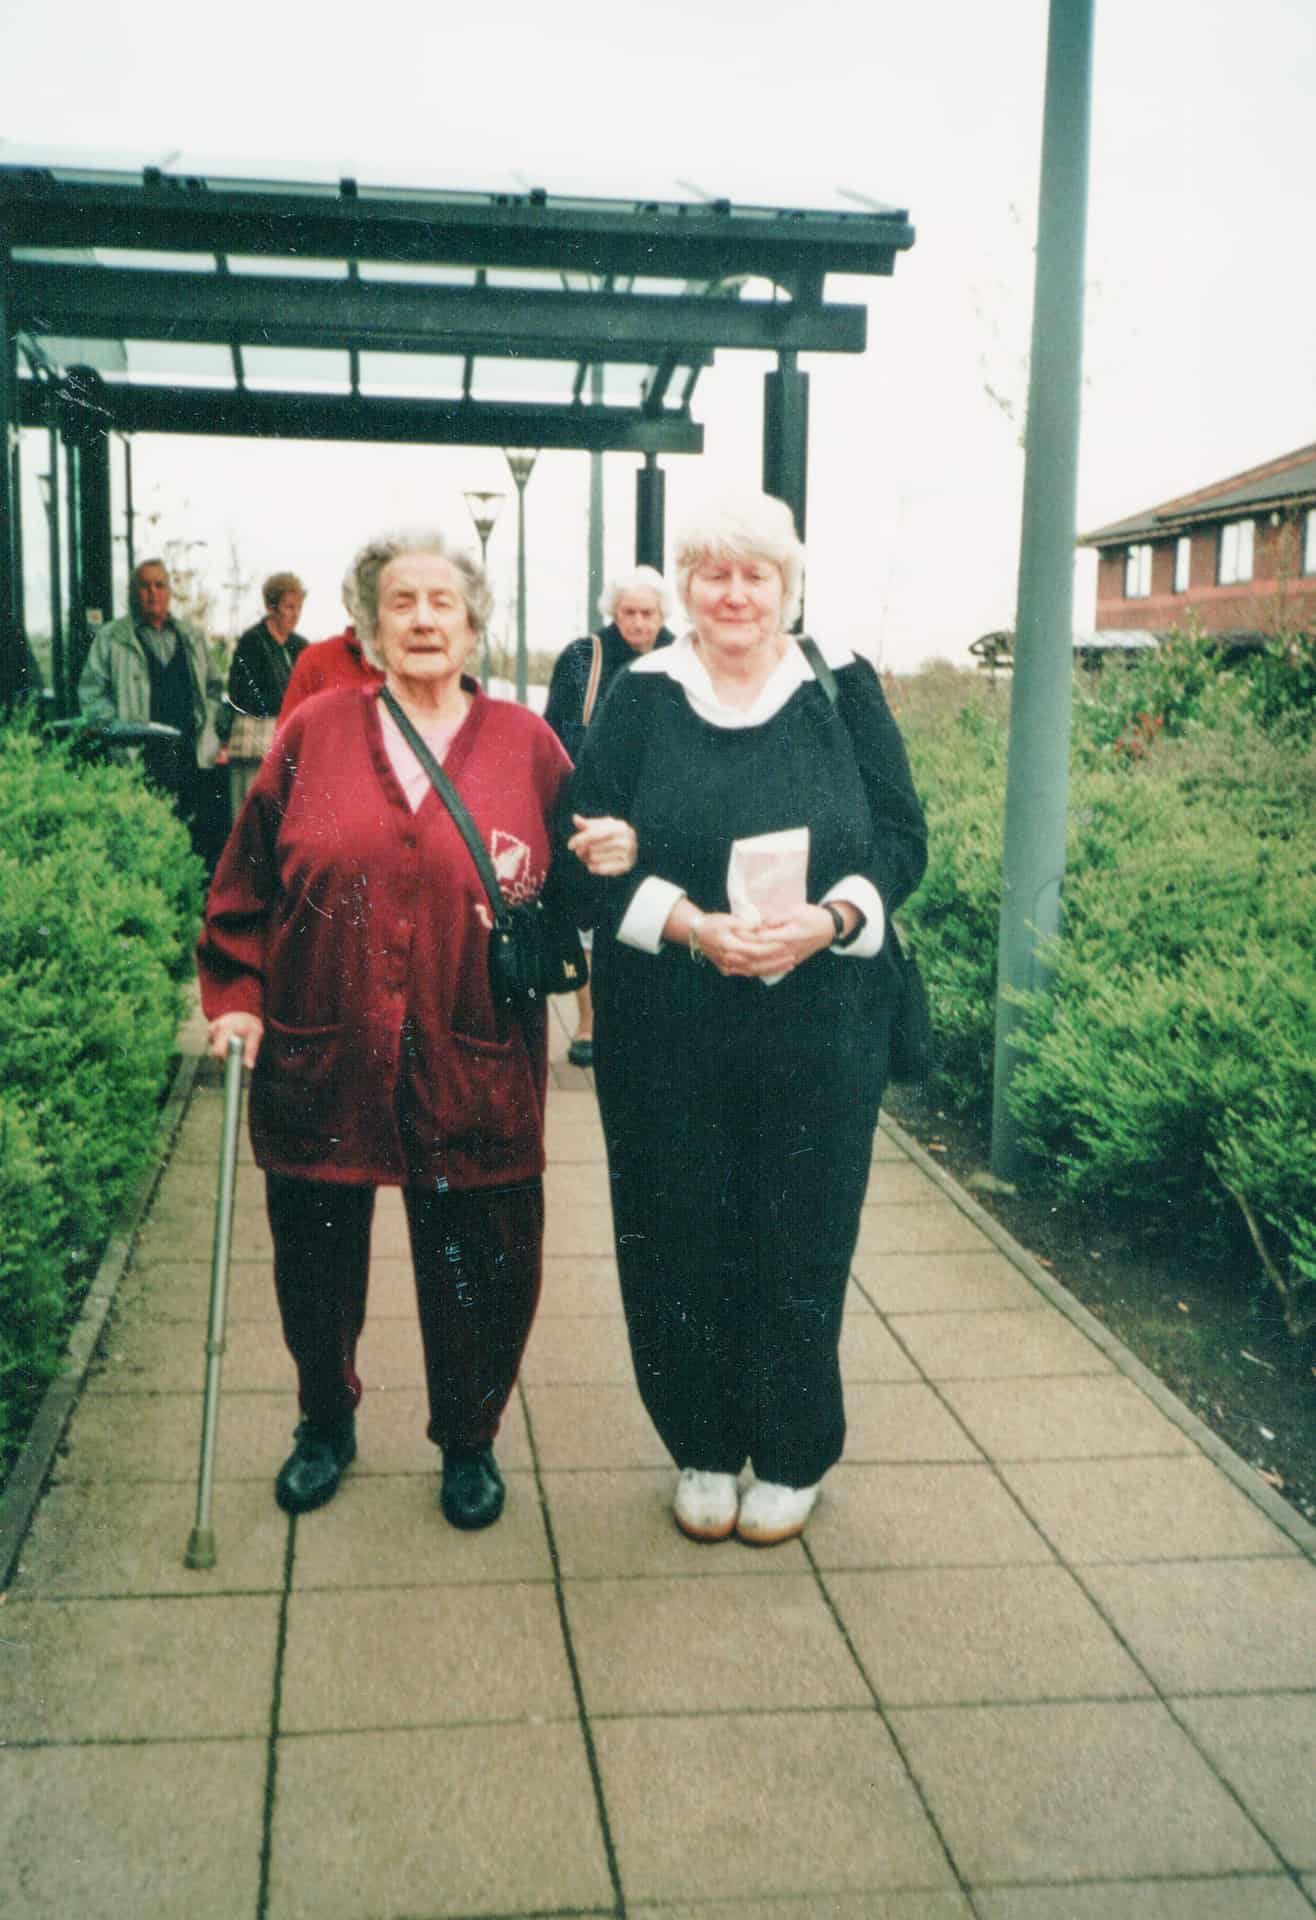 This is me and mom, we were going away for my 60th and my mom's 90th. It's a pity my daughter is not on there because she was 30 in the same year. We had a smashing party for all of us.